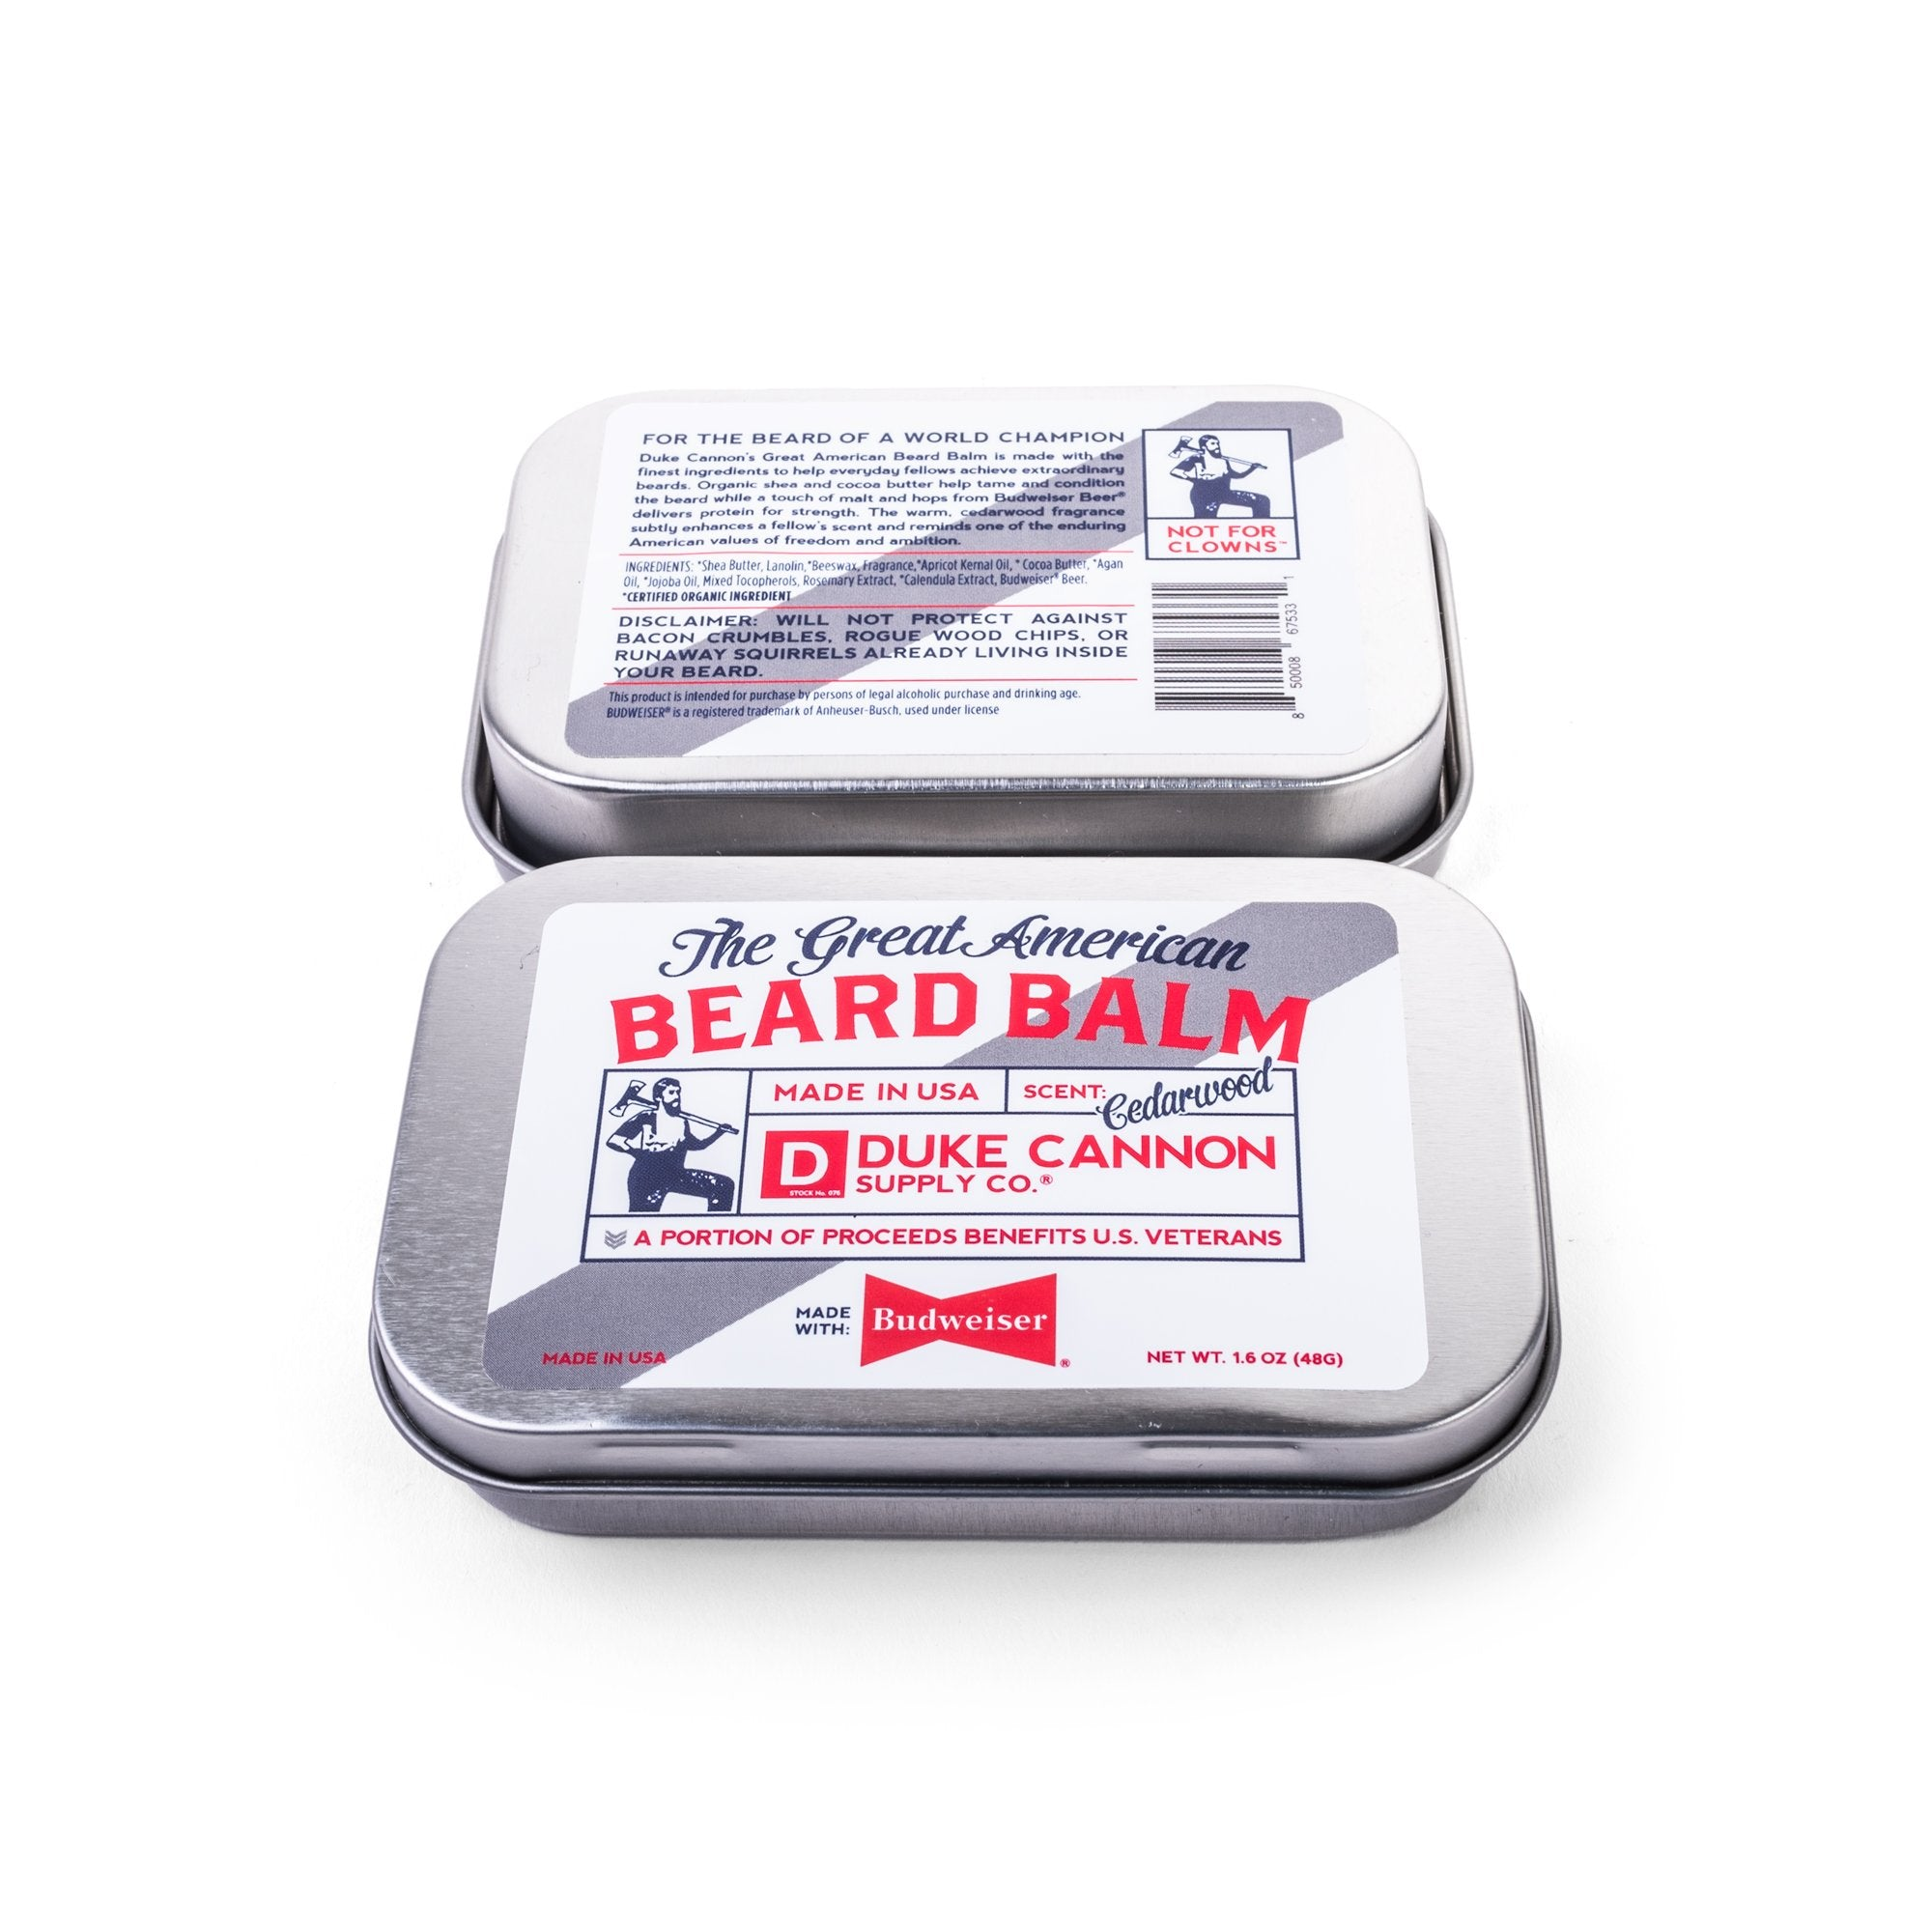 Great American Beard Balm - Made with Budweiser - Duke Cannon